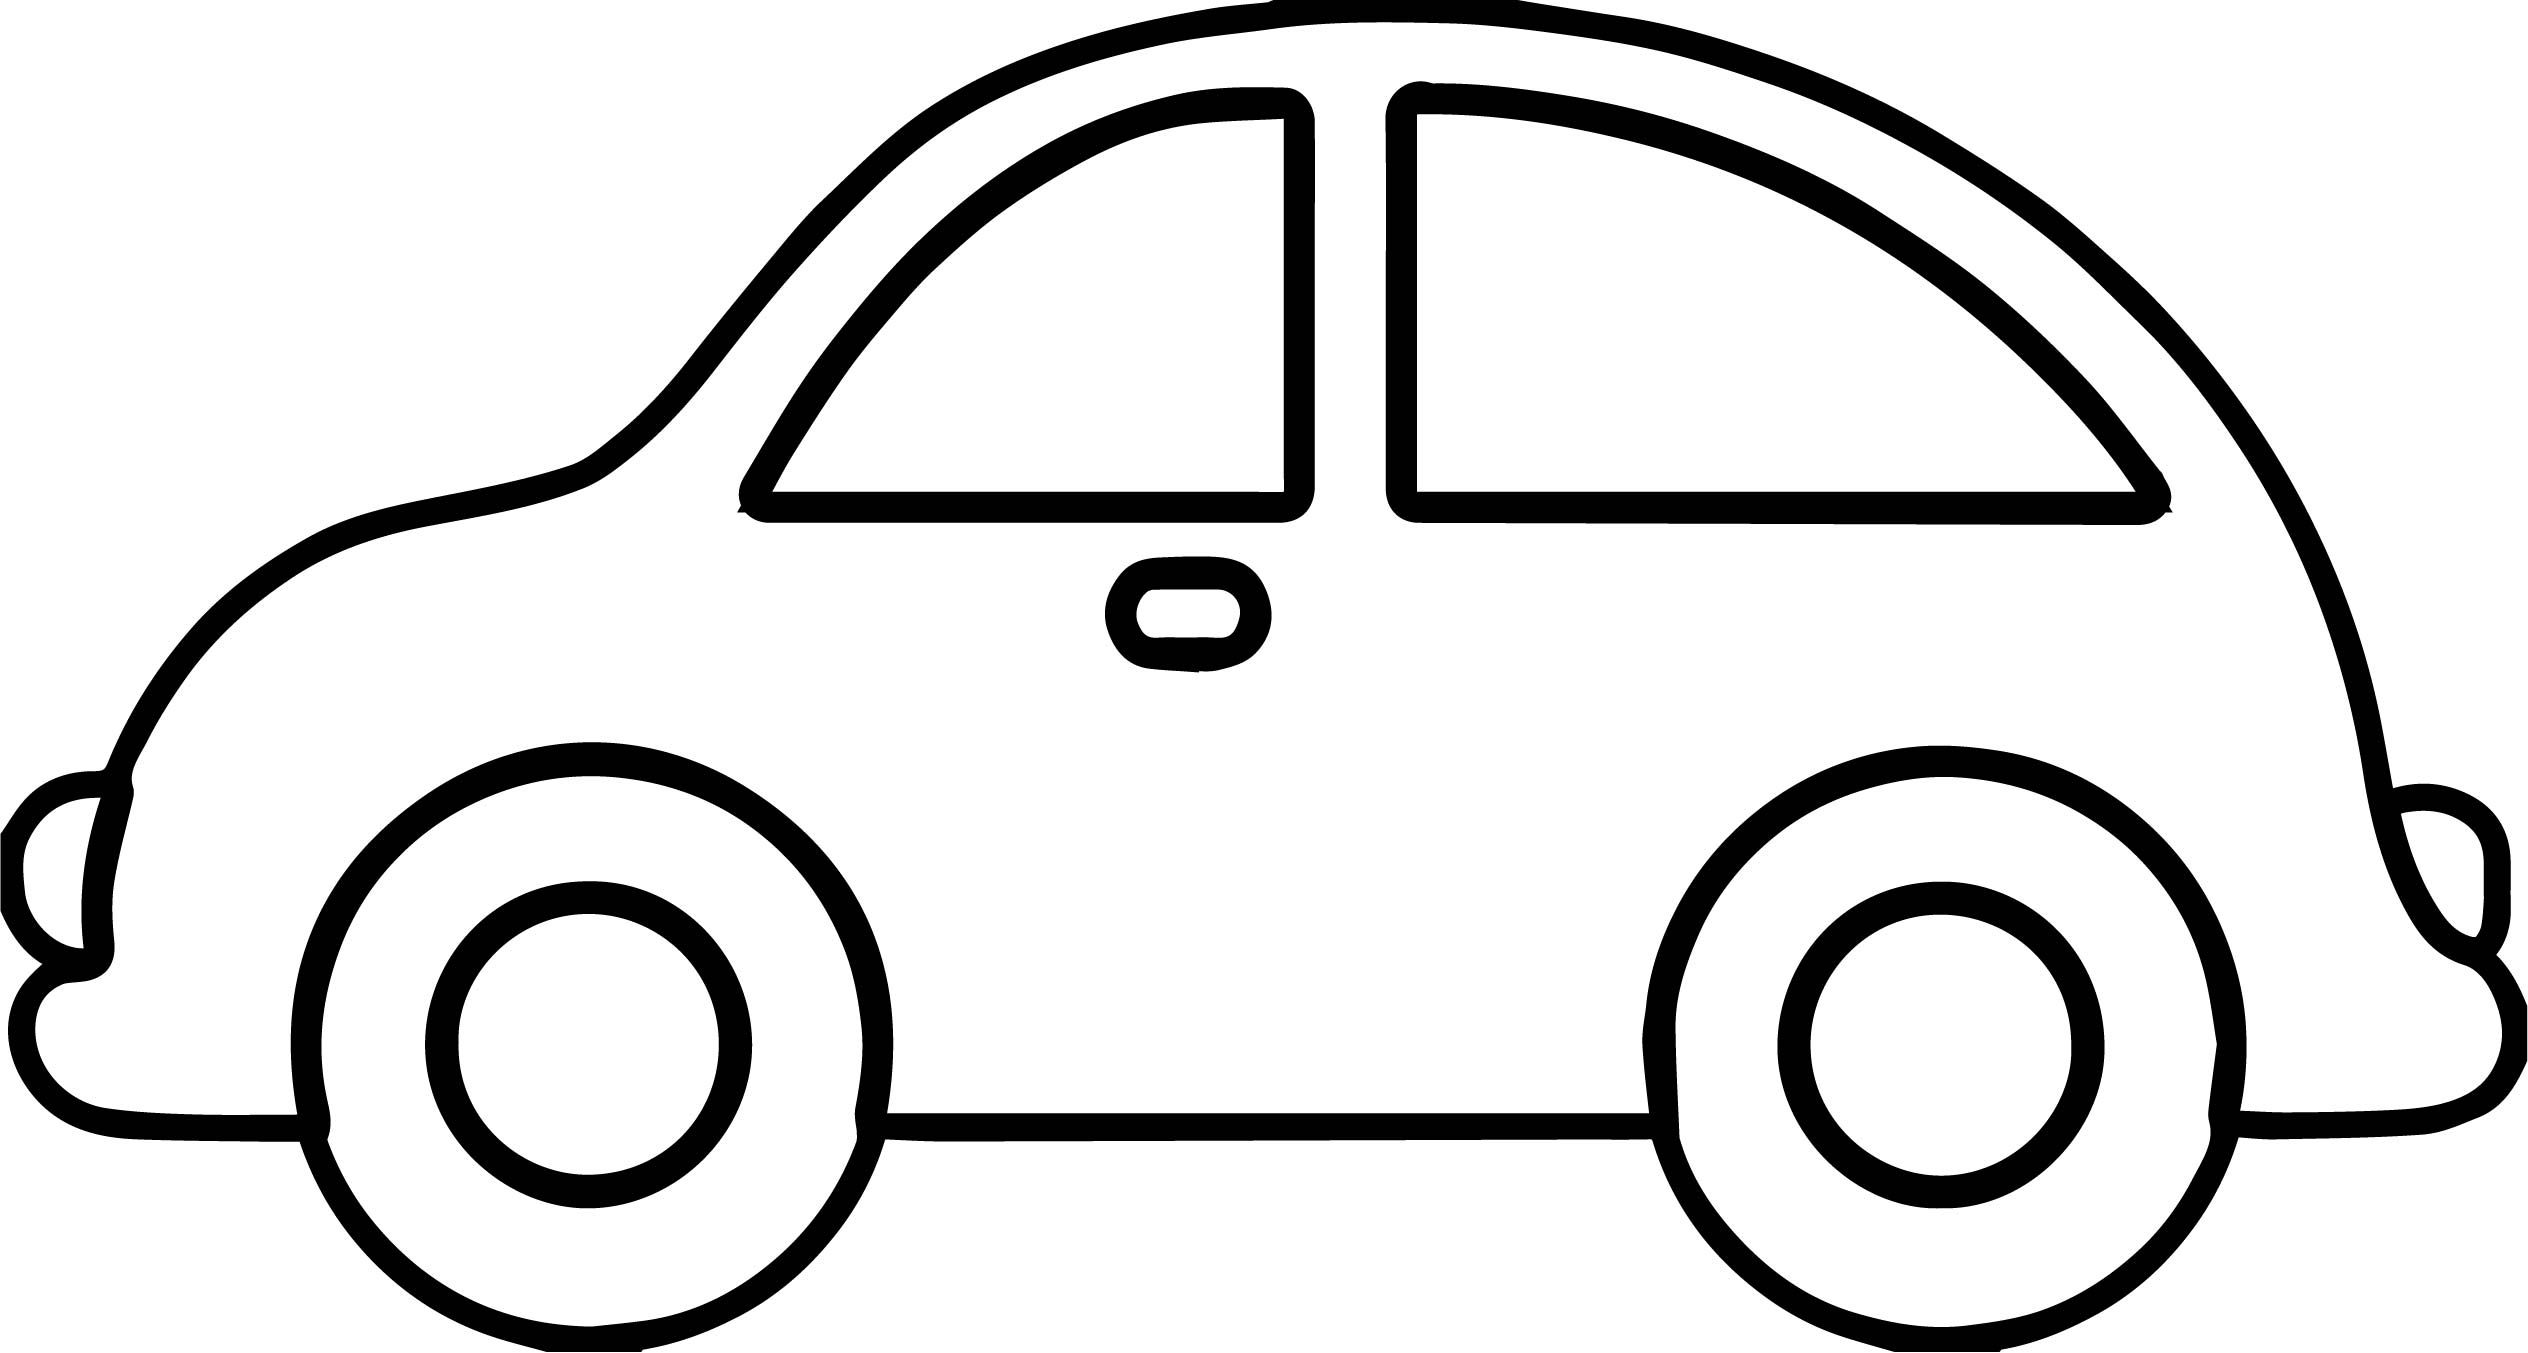 toy car coloring page cars to download for free cars kids coloring pages car toy coloring page